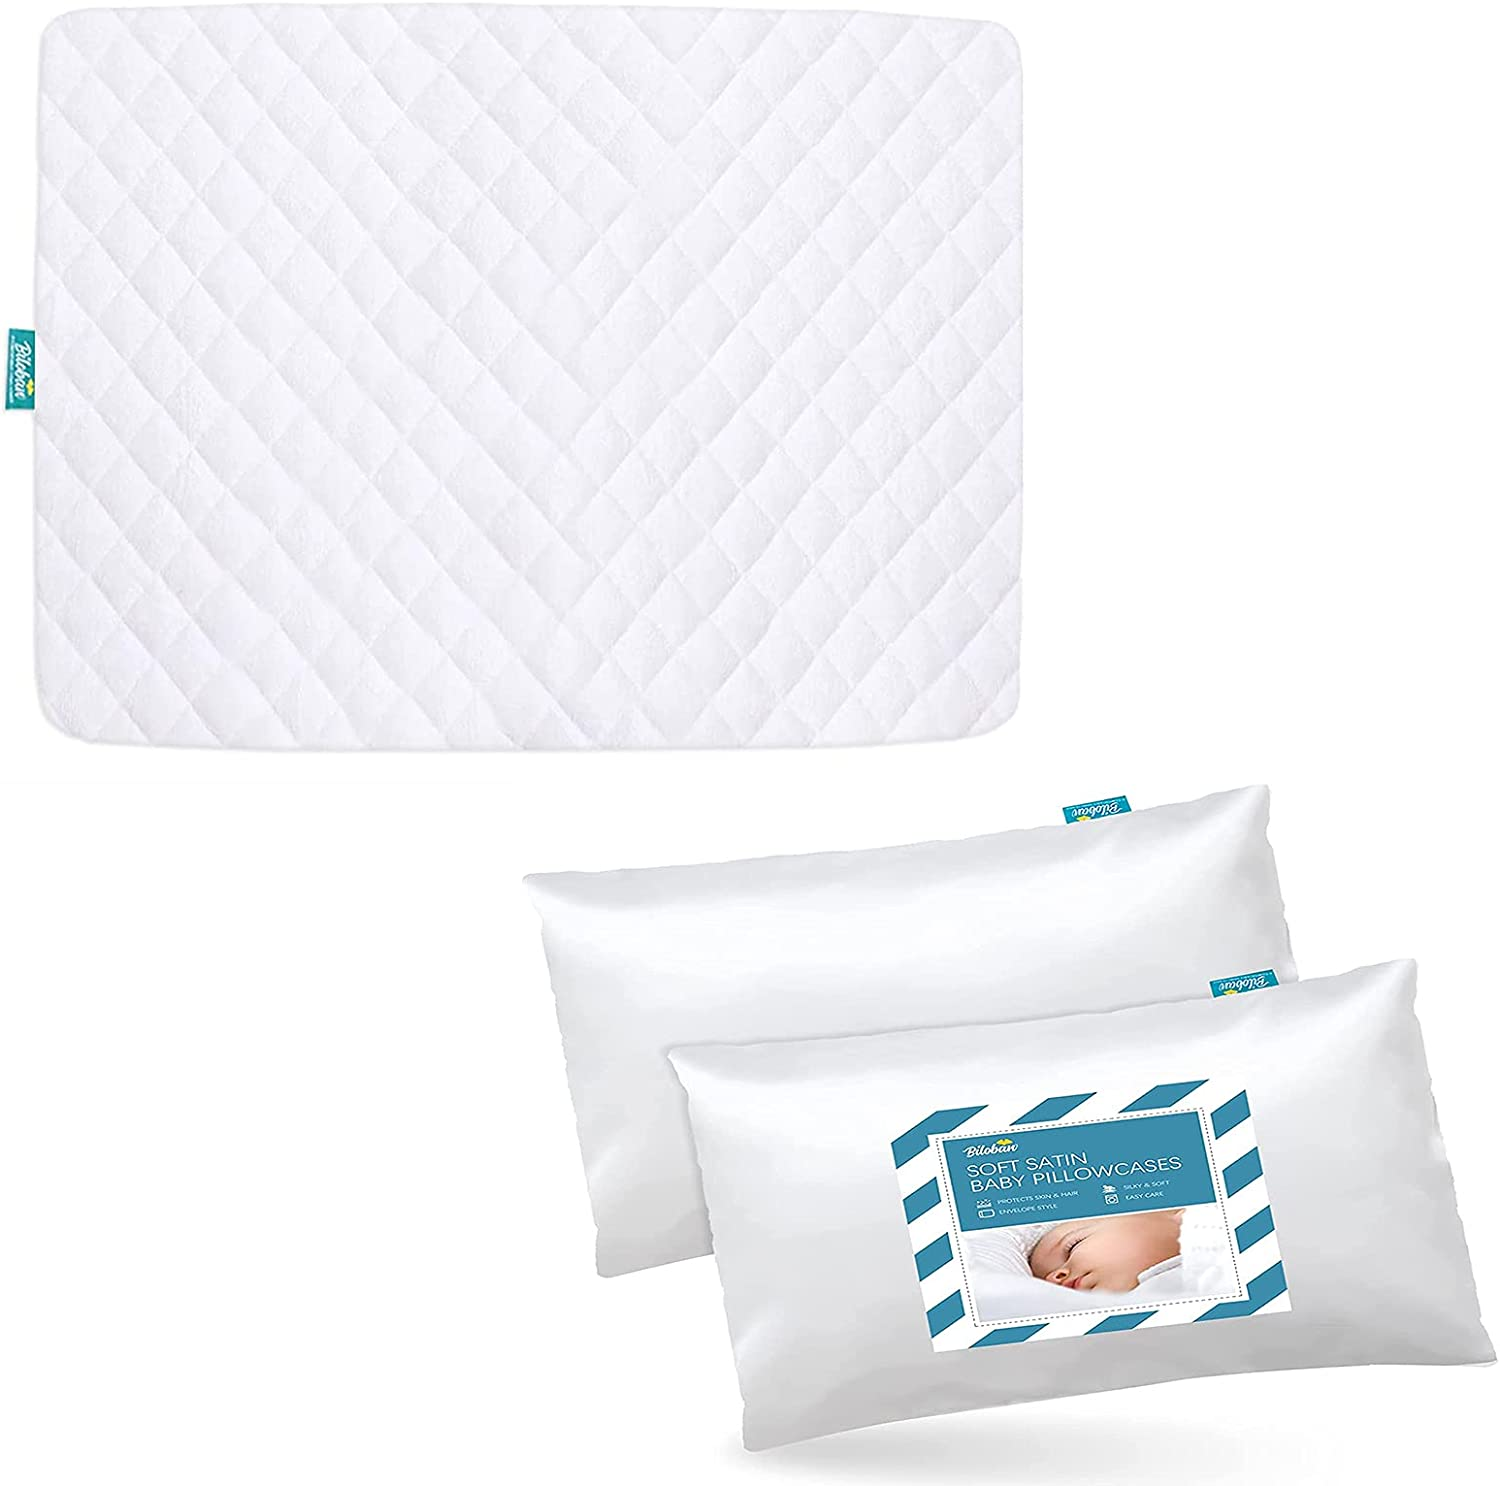 Pack Factory outlet n Play Sheet Quilted with Waterproof White Satin Protector New York Mall